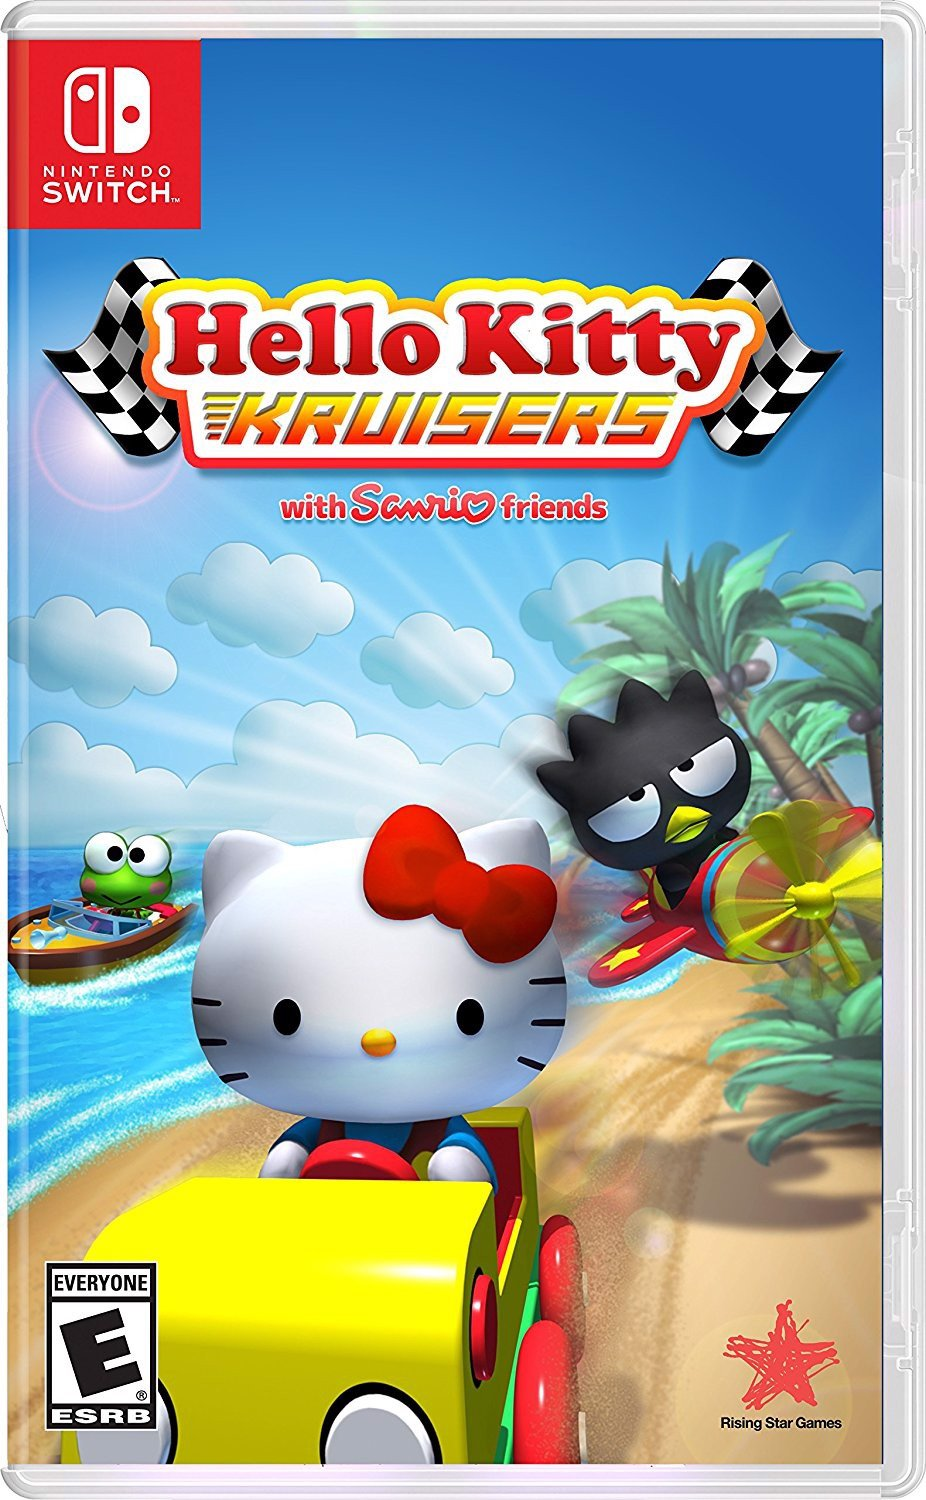 086 - Hello Kitty Kruisers with Sanrio Friends